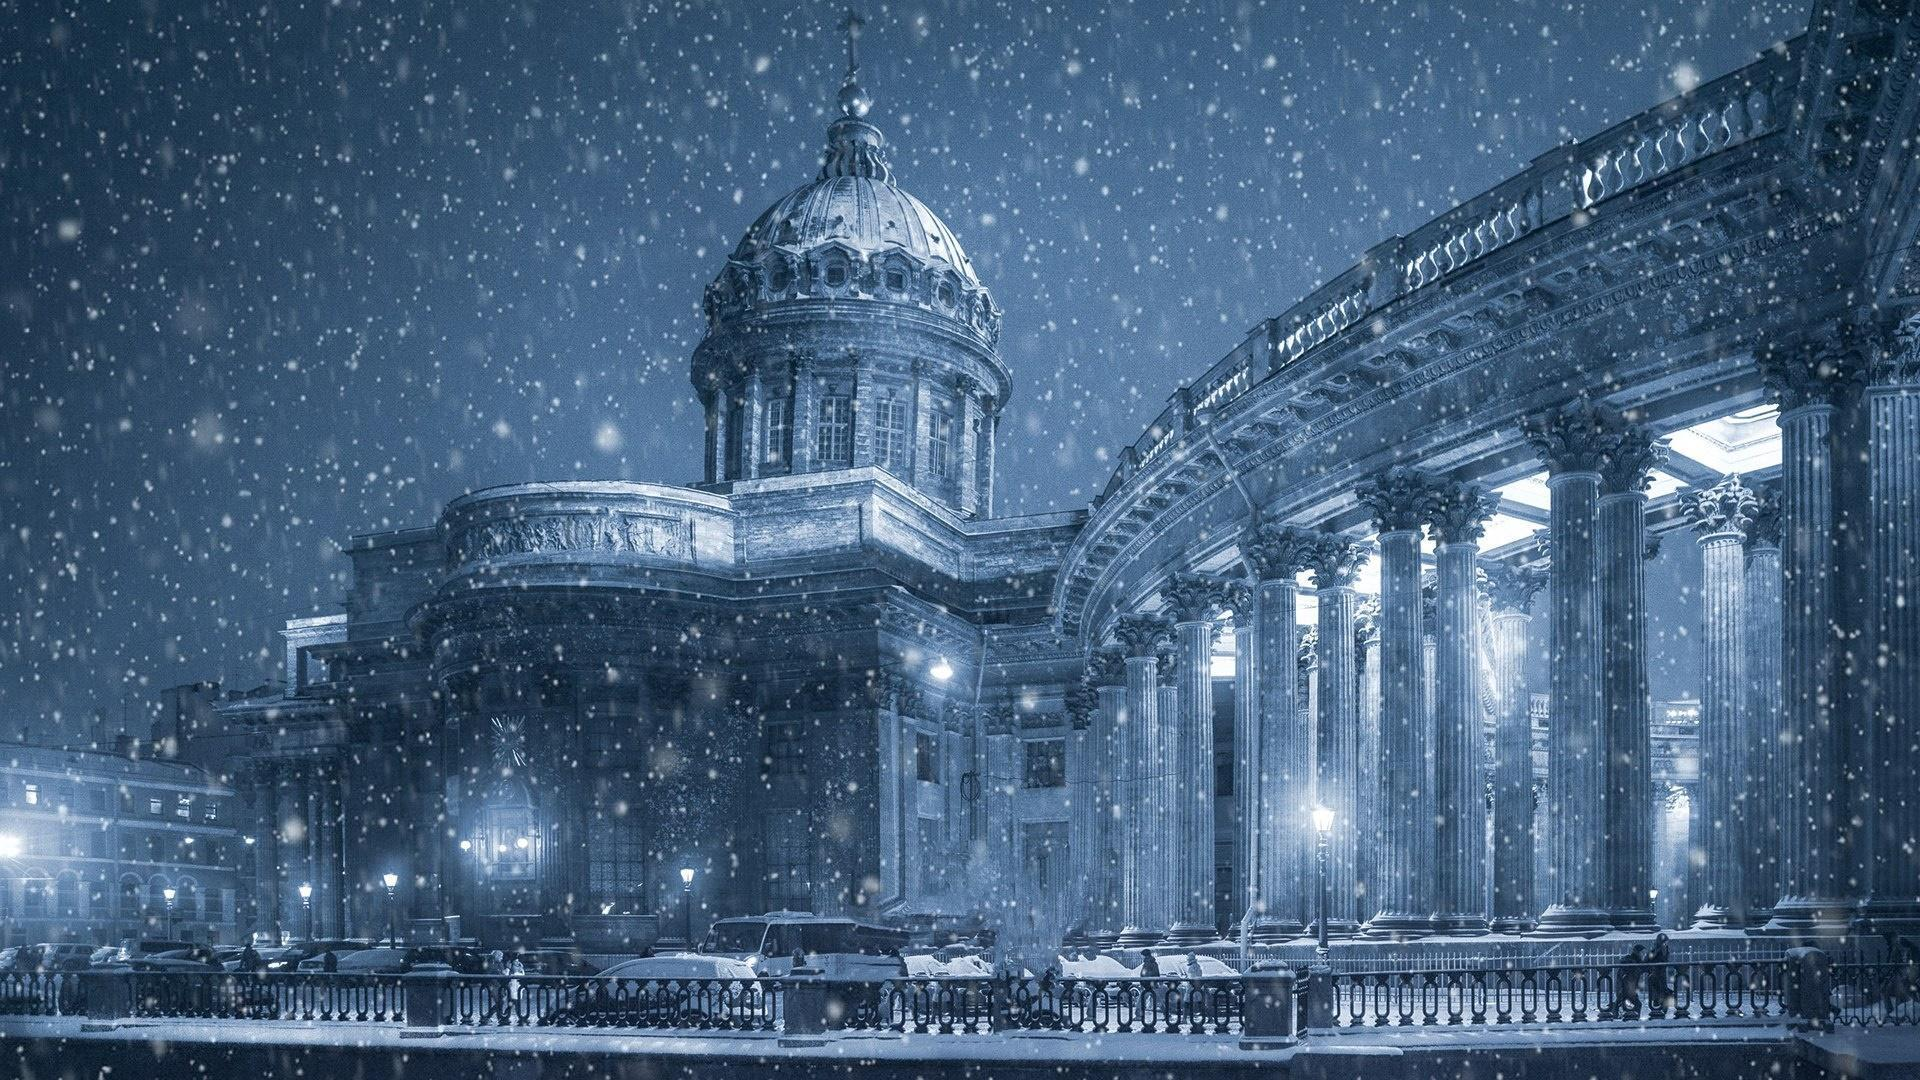 Saint Petersburg Wallpaper (38+), Download 4K Wallpapers For Free